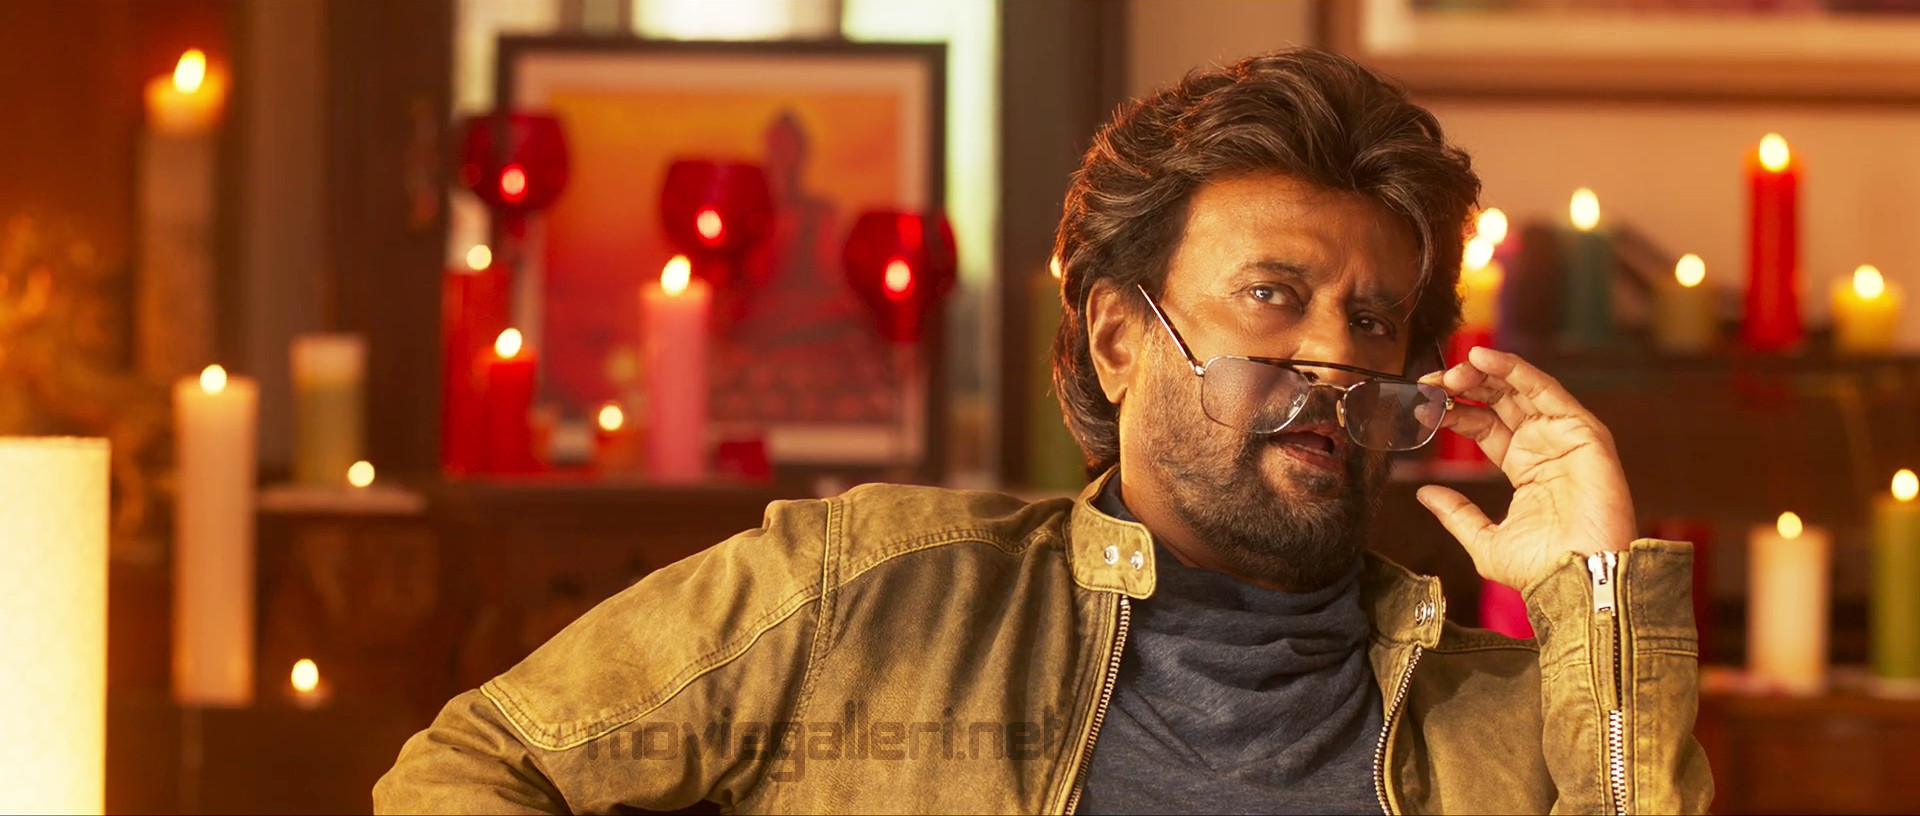 petta rajini hd new imags